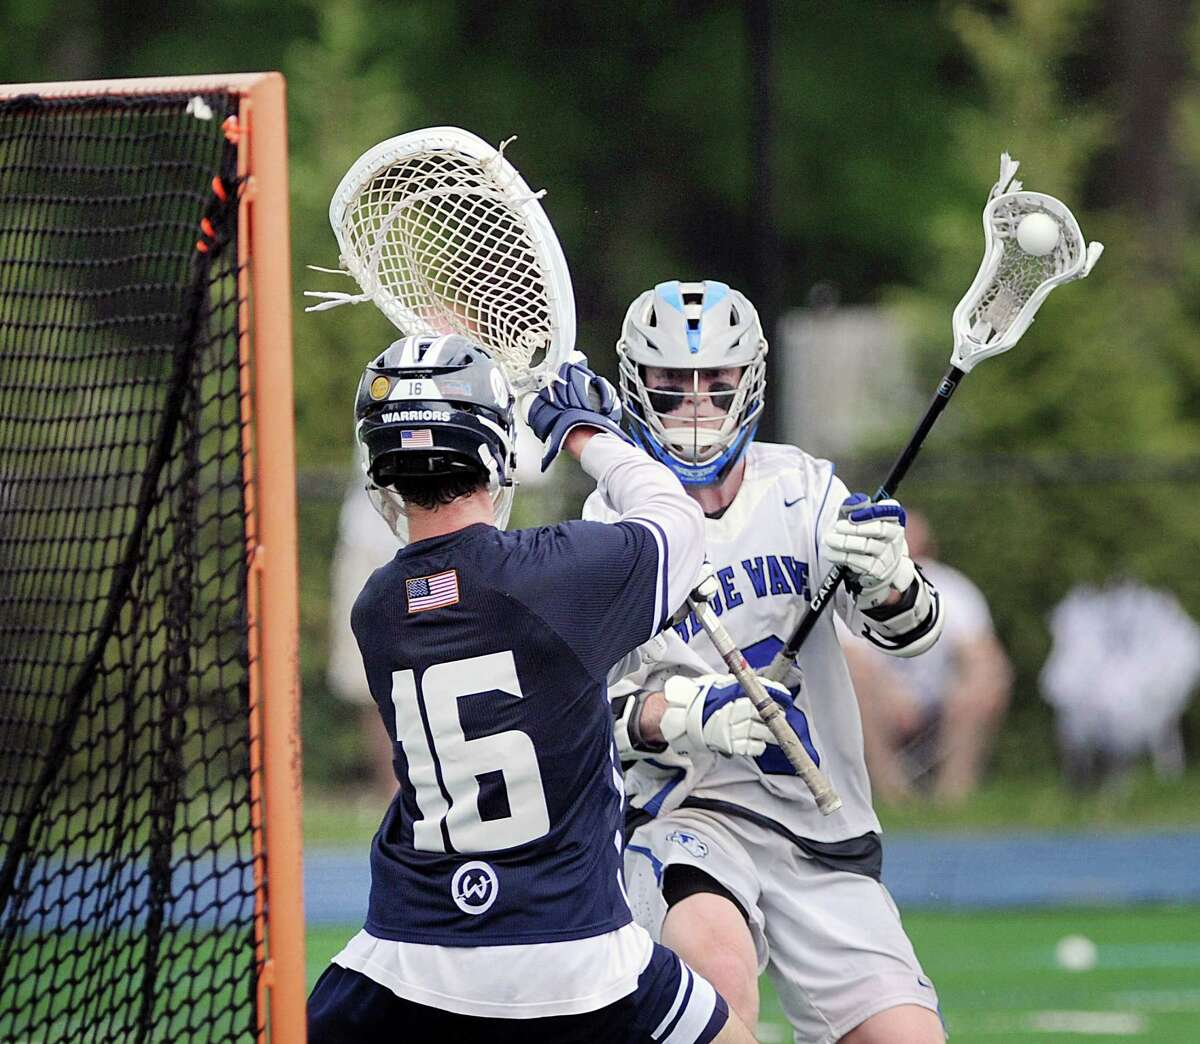 Hudson Pokorny of Darien, right, prepares to shoot as Wilton goalie Andrew Calabrese (#16) defends on a shot that he stopped during the class L boys high school lacrosse quarterfinal match between Dairen High School and Wilton High School at Darien, Conn., Saturday, June 2, 2018. Darien won the match 11-10 over Wilton to advance.